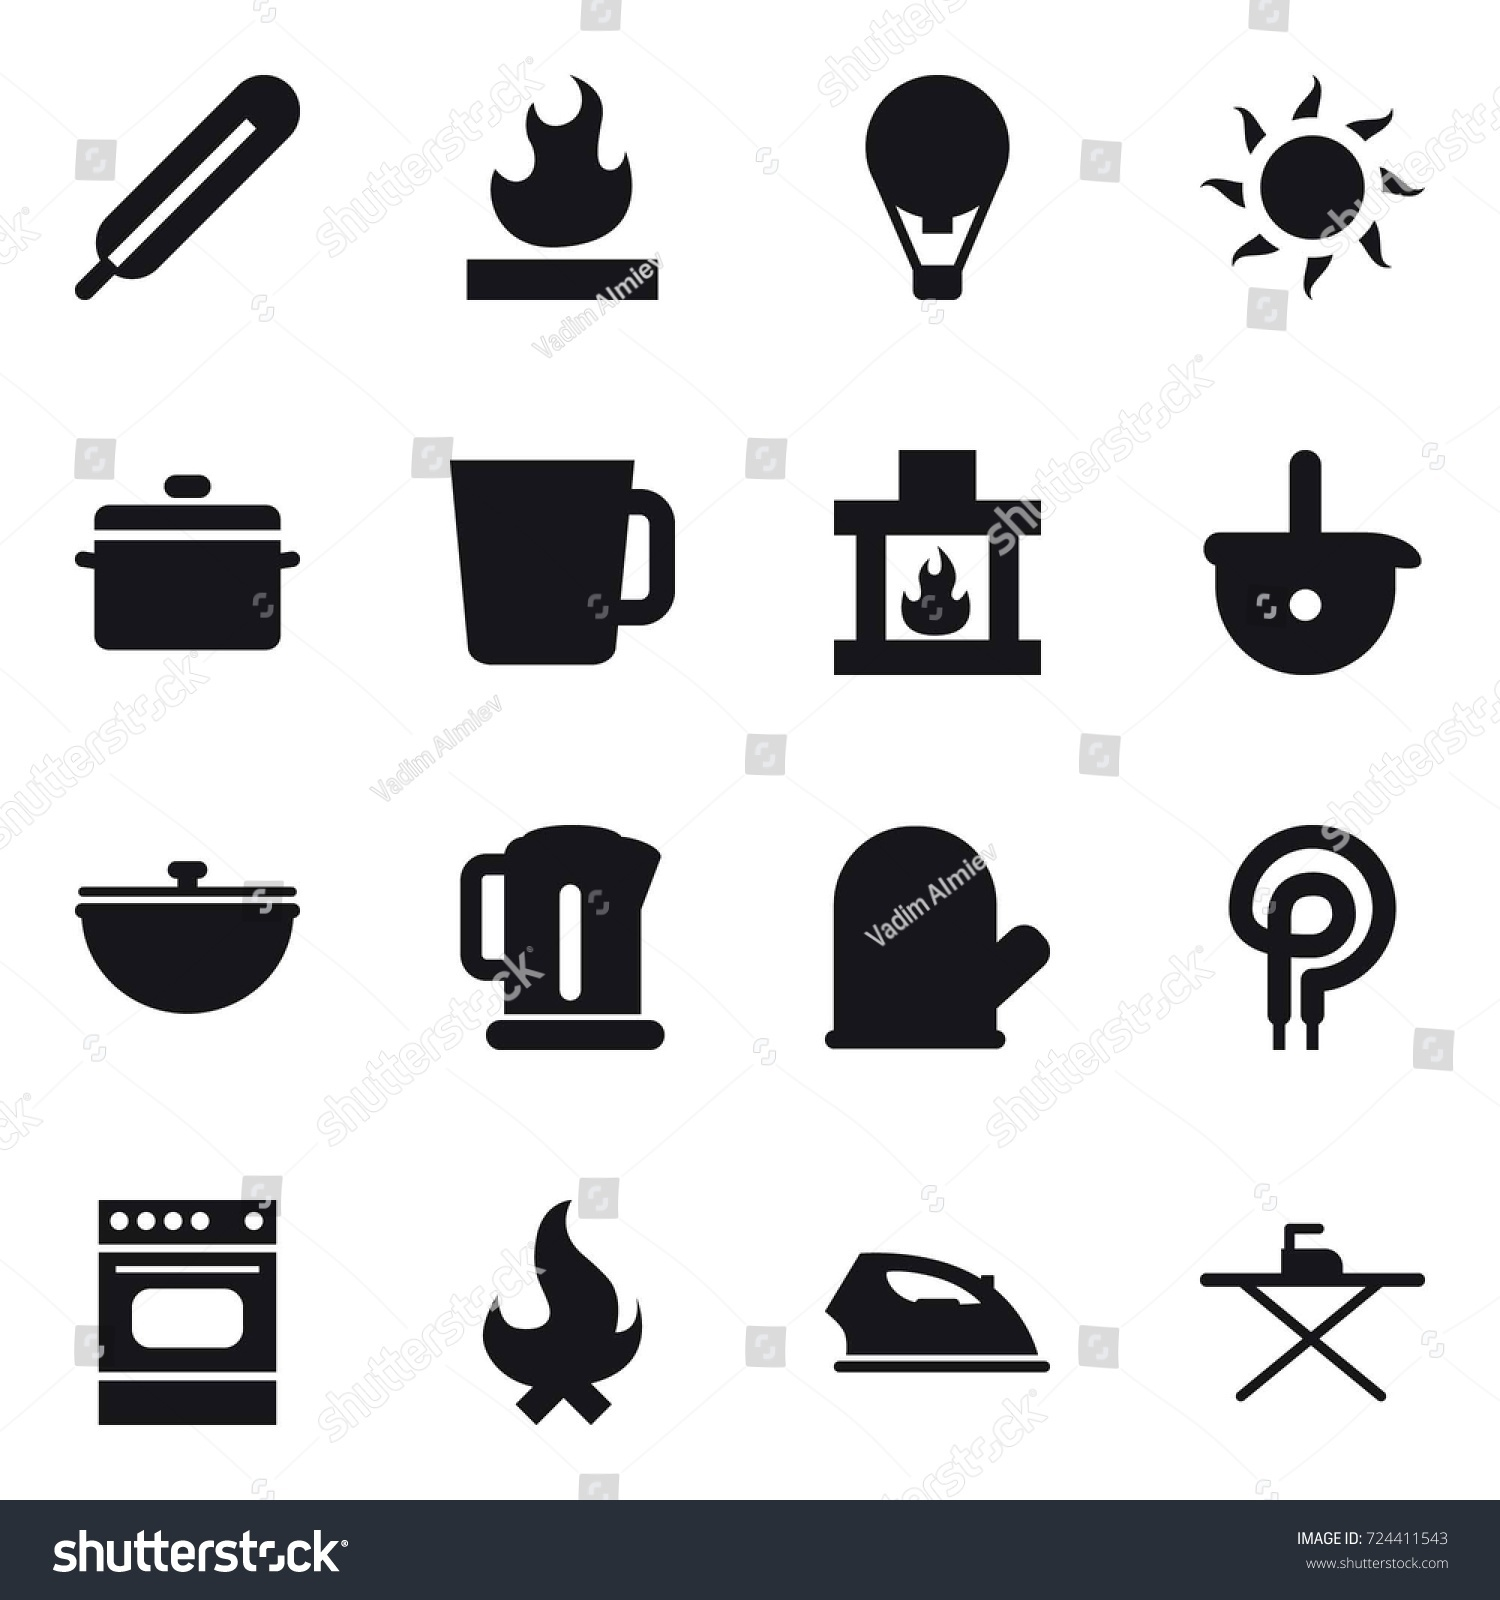 16 vector icon set air ballon stock vector 724411543 shutterstock